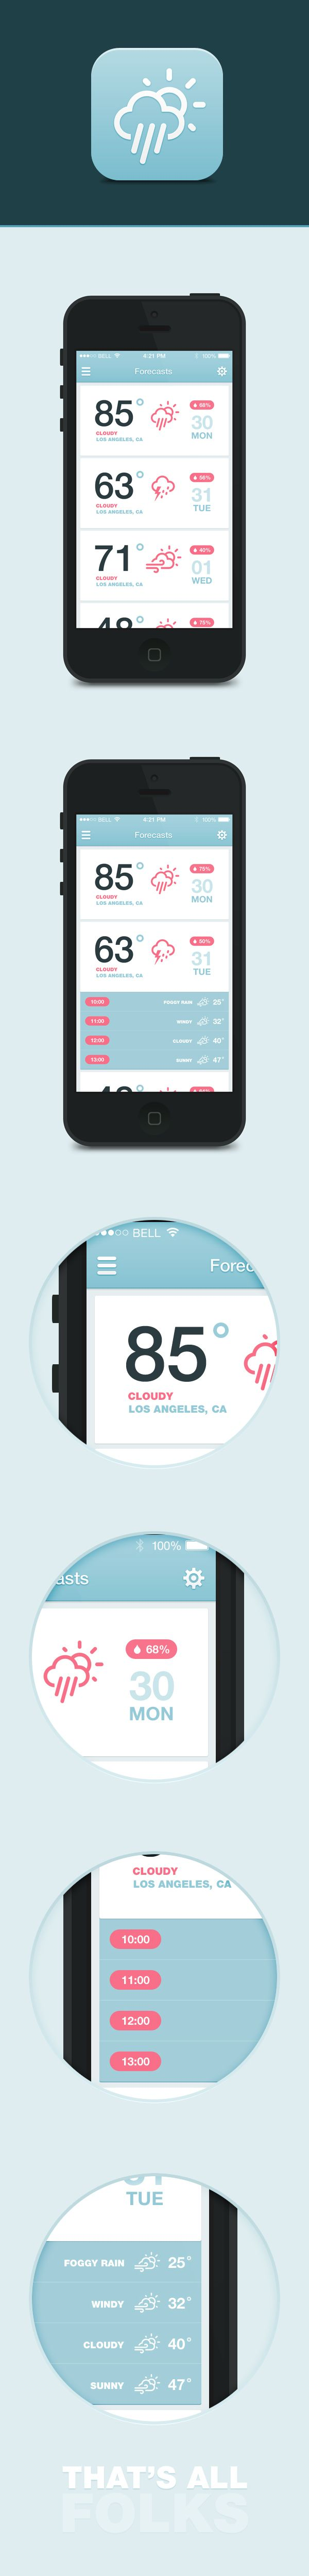 iOS7 Weather App by Dmitriy Haraberush, via Behance